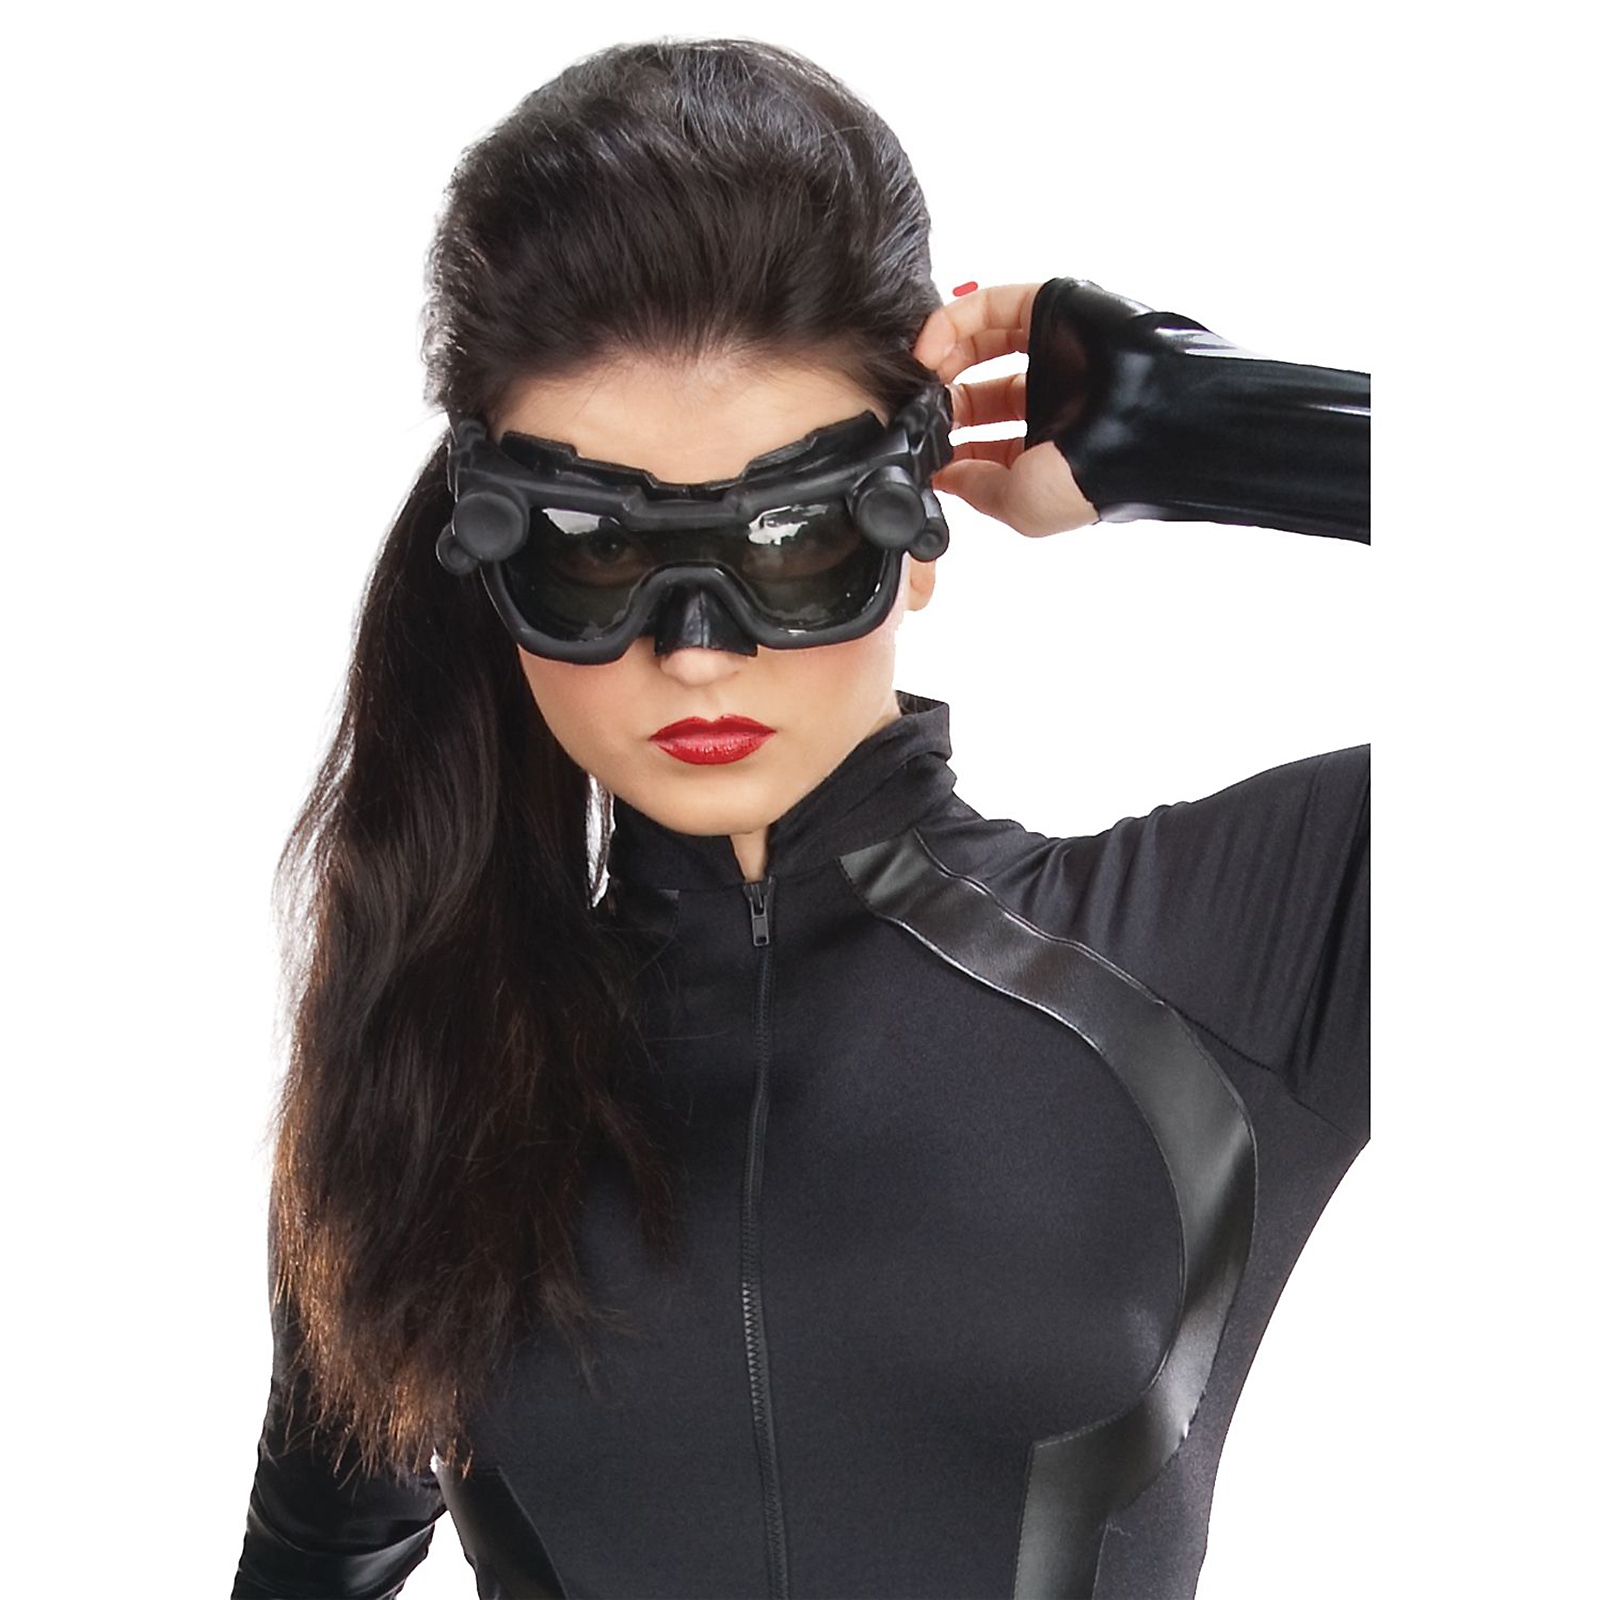 Girls Goggles The Dark Knight Rises Catwoman Halloween Accessory - Adult Size PartNumber: 05014405000P